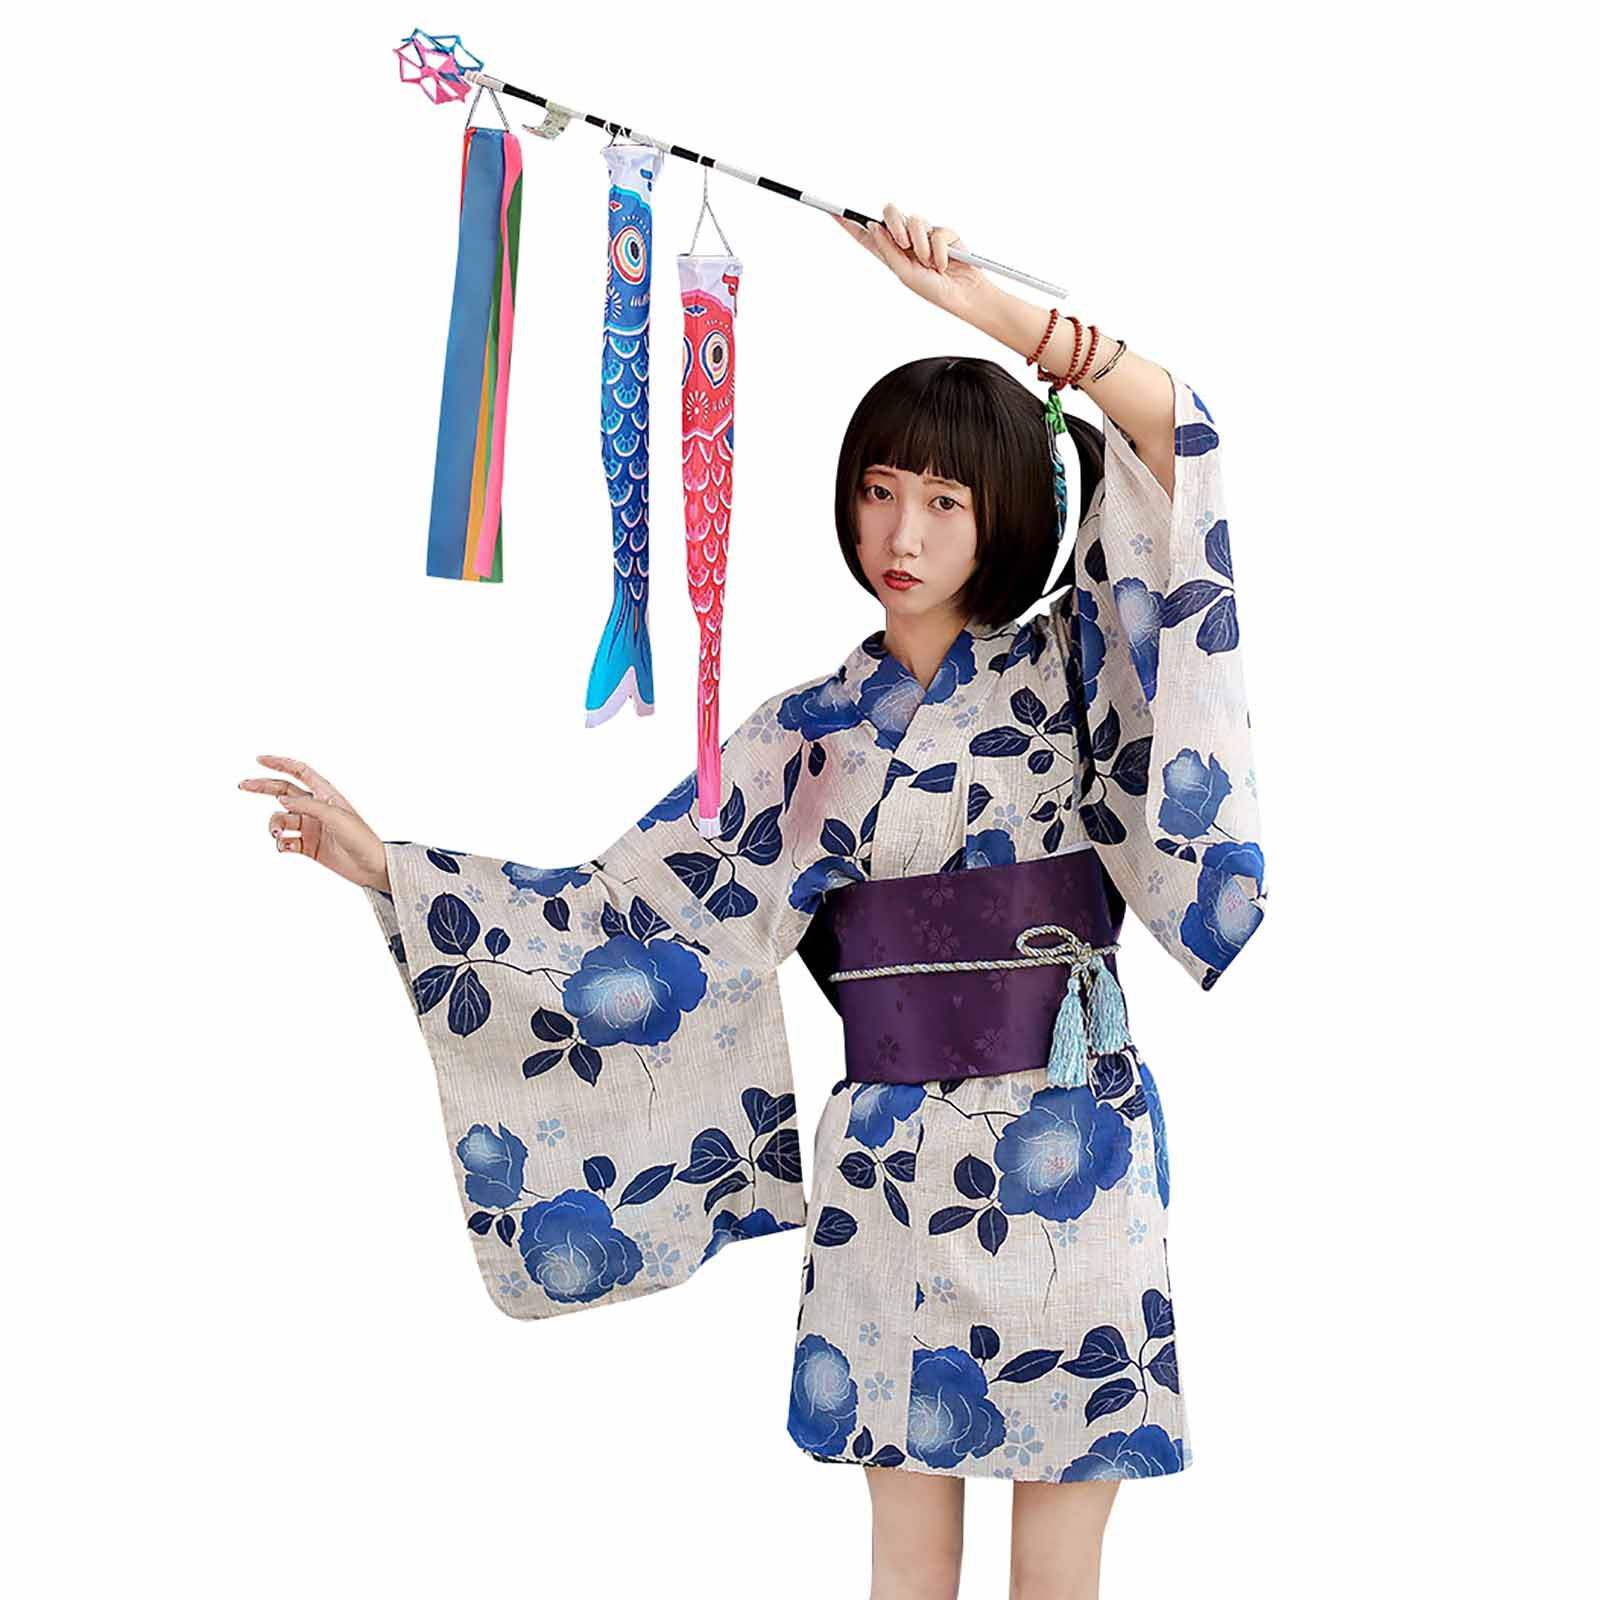 Fresh Blue Floral Short Kimono Dress Women's Cotton Linen Summer Festival Japanese Yukata Bathrobe Night Wear